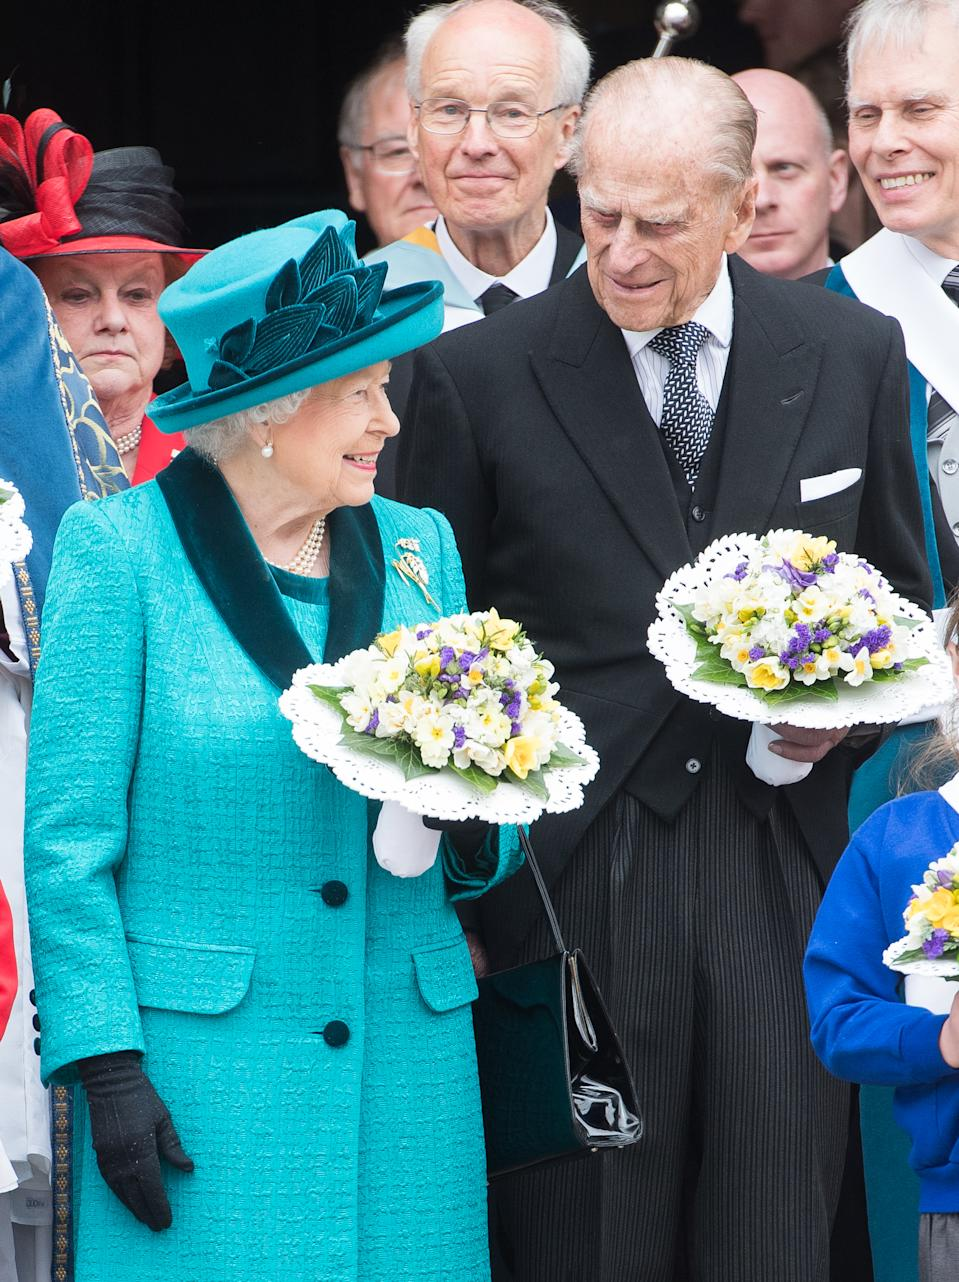 The Royal Maundy service at Leicester Cathedral. [Photo: Getty]